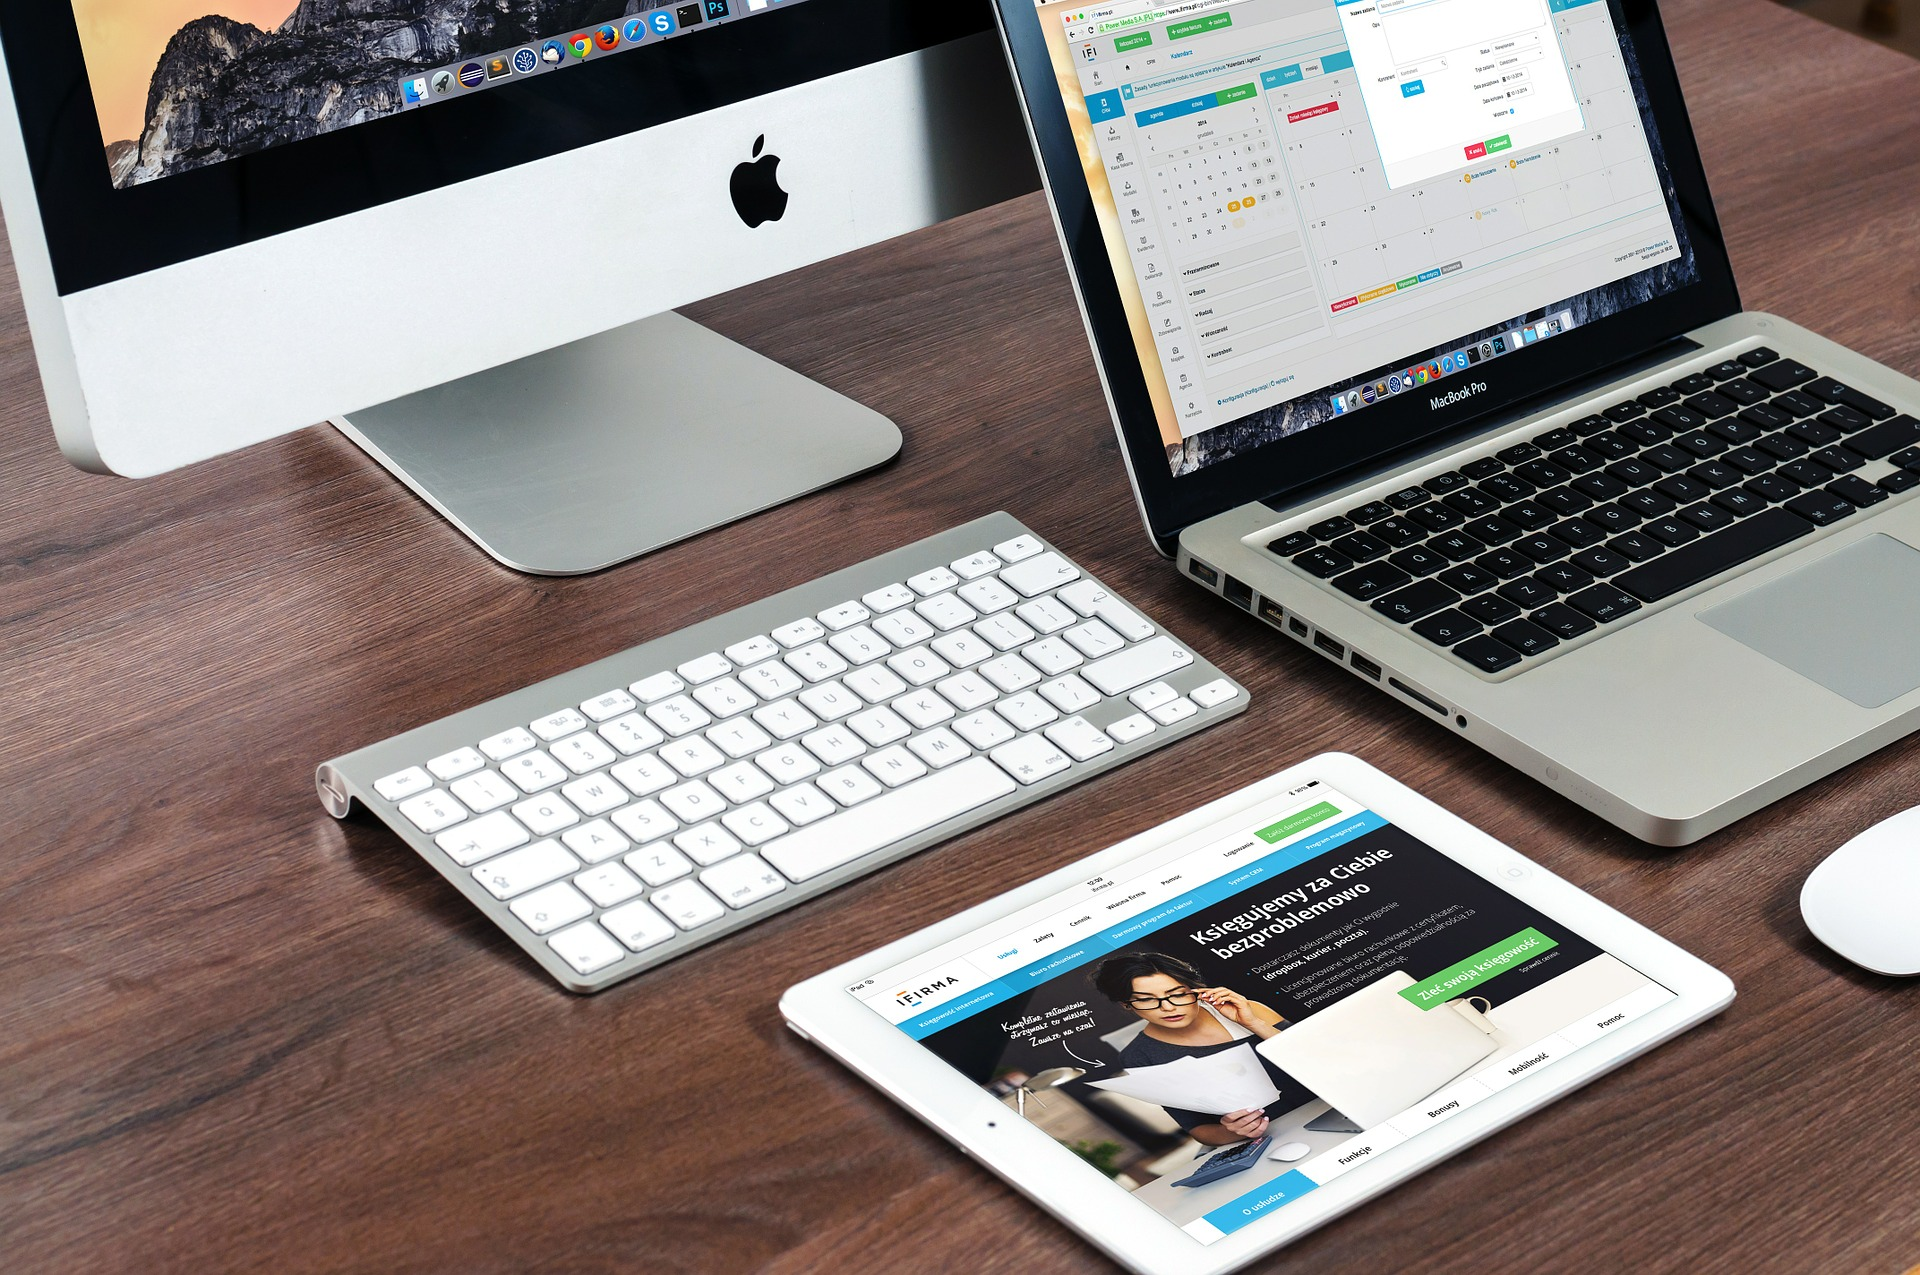 Mac Laptops, Tablets and Apple Devices